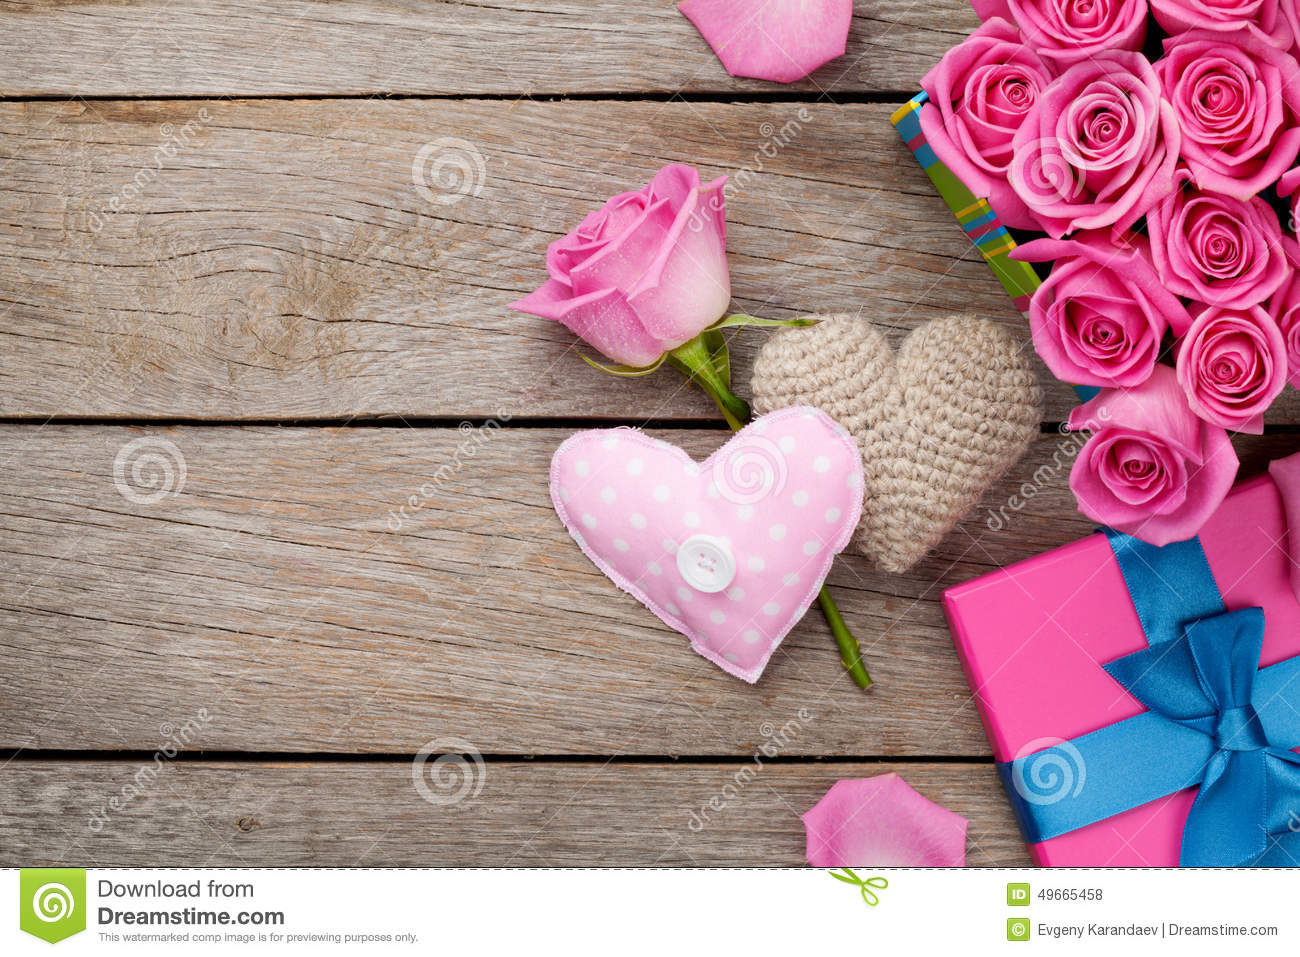 Valentines day background with gift box full of pink roses and h